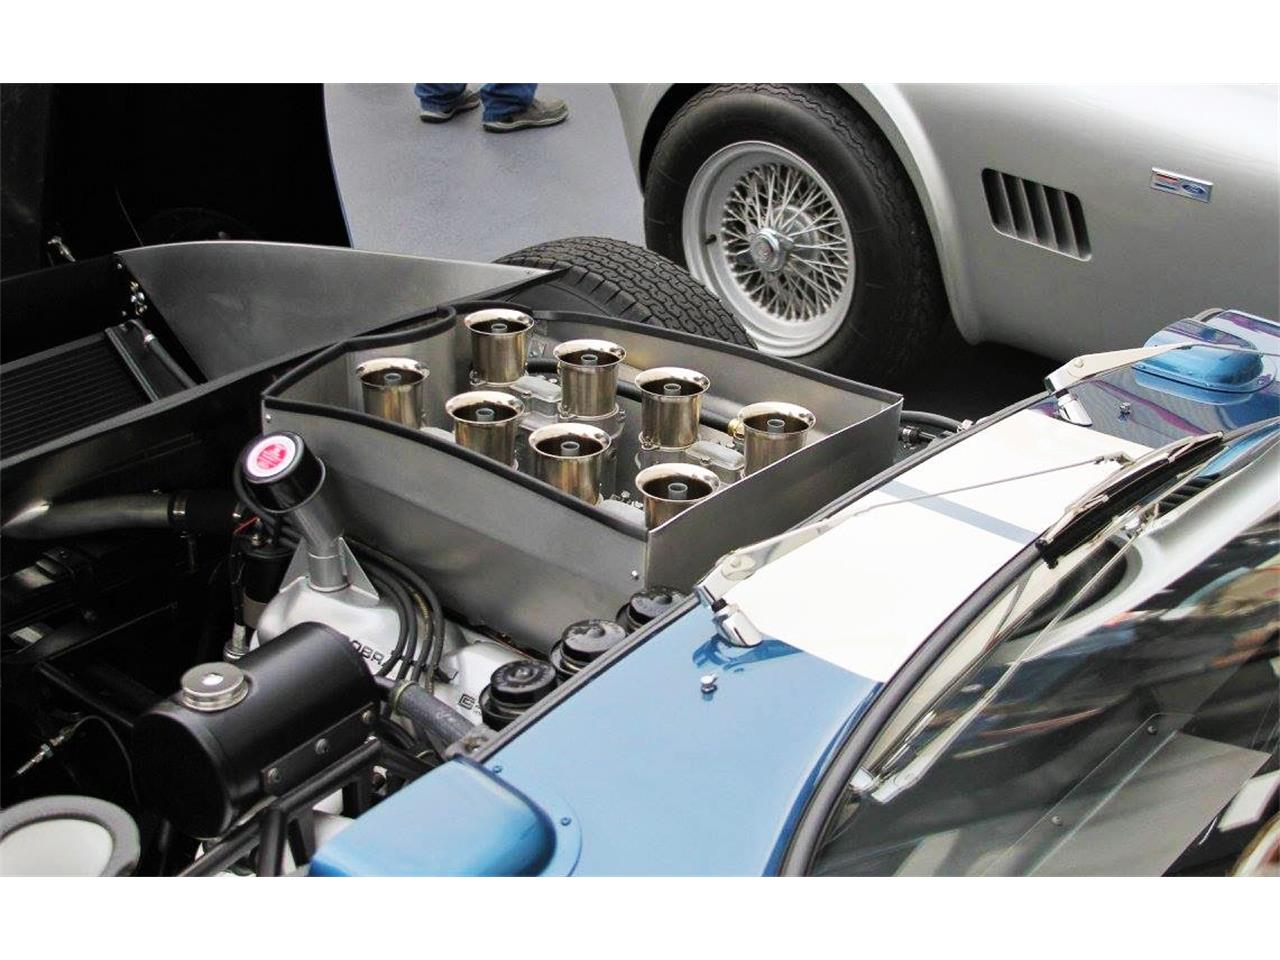 Large Picture of '62 Daytona Coupe located in Irvine California - $375,000.00 - LBP2